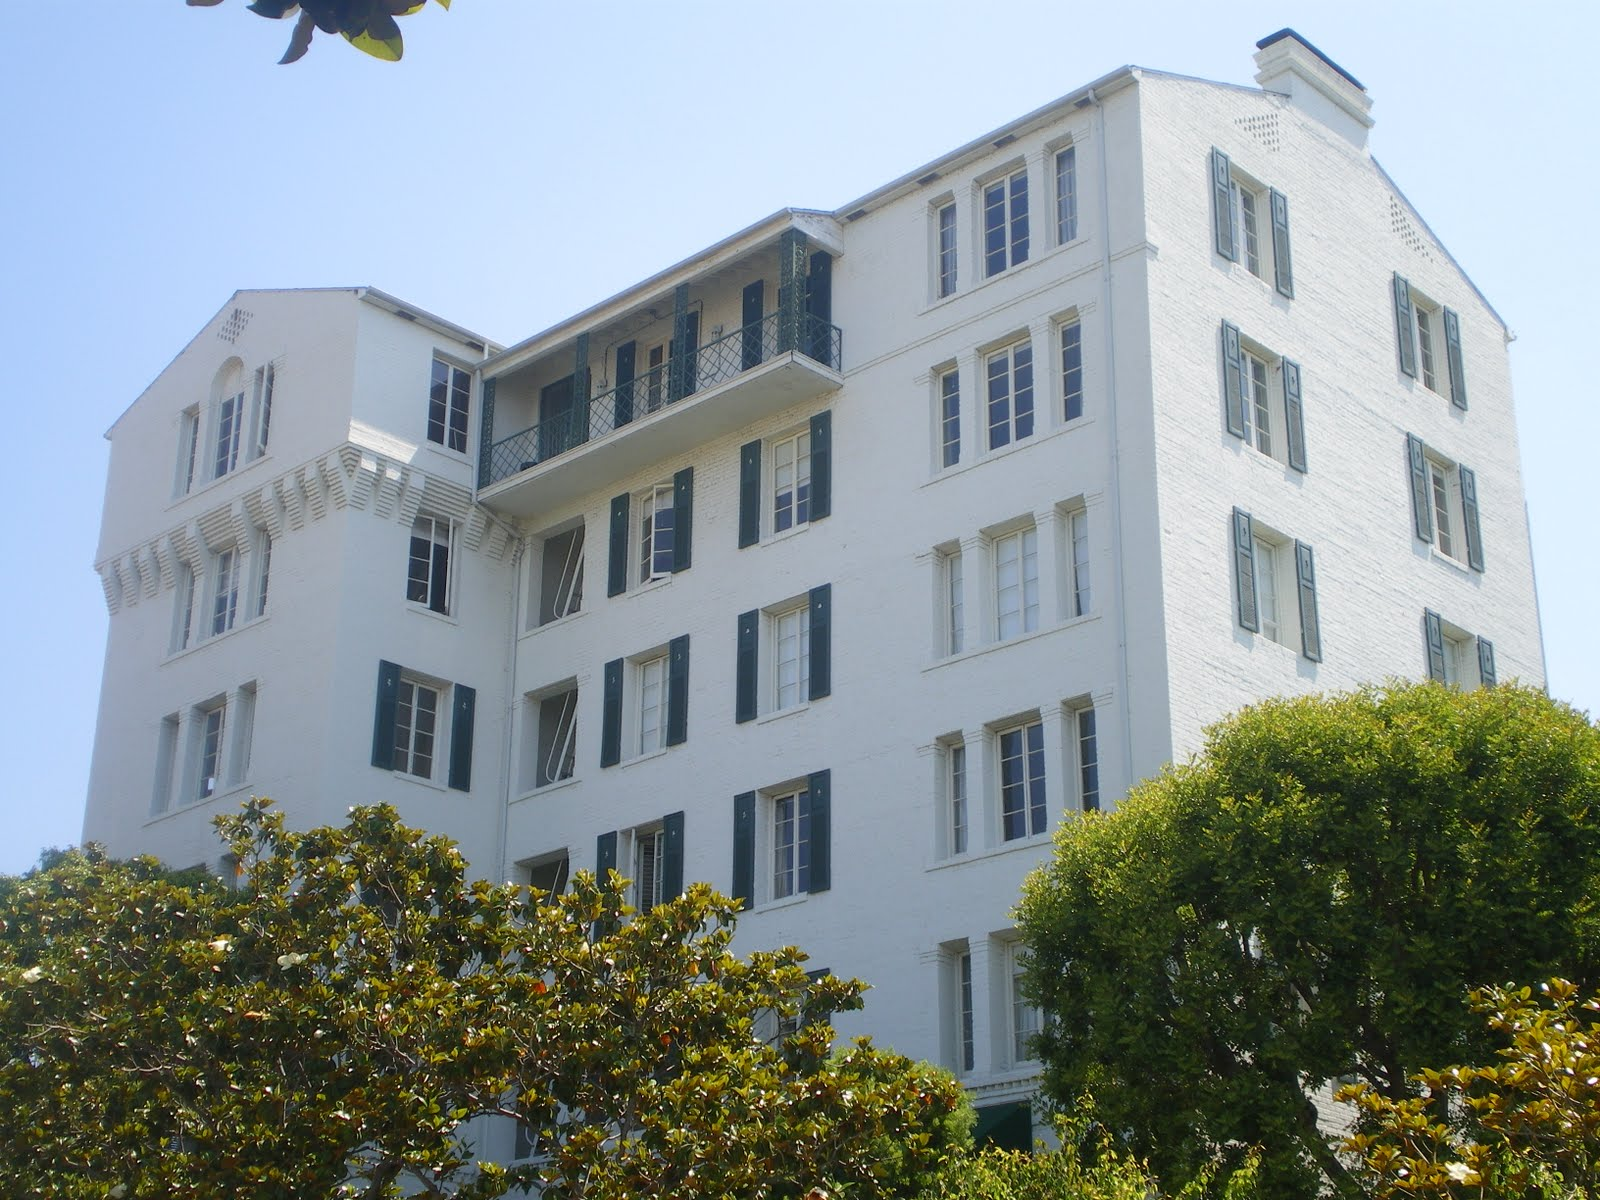 http://3.bp.blogspot.com/_Ck12nxQQ_3A/S-xpI_DRVfI/AAAAAAAAAfE/SXa8oFIgRTc/s1600/Colonial_House,_West_Hollywood.JPG